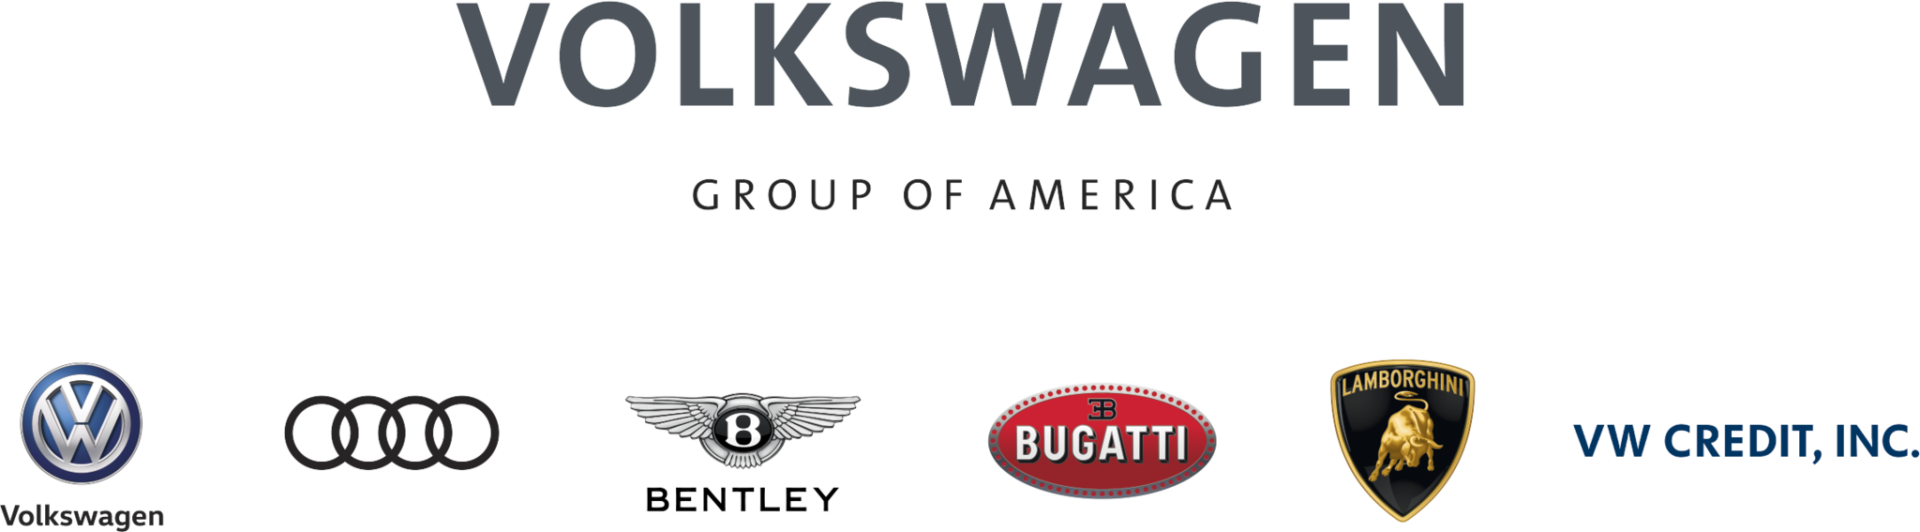 Volkswagen Group of America Logo